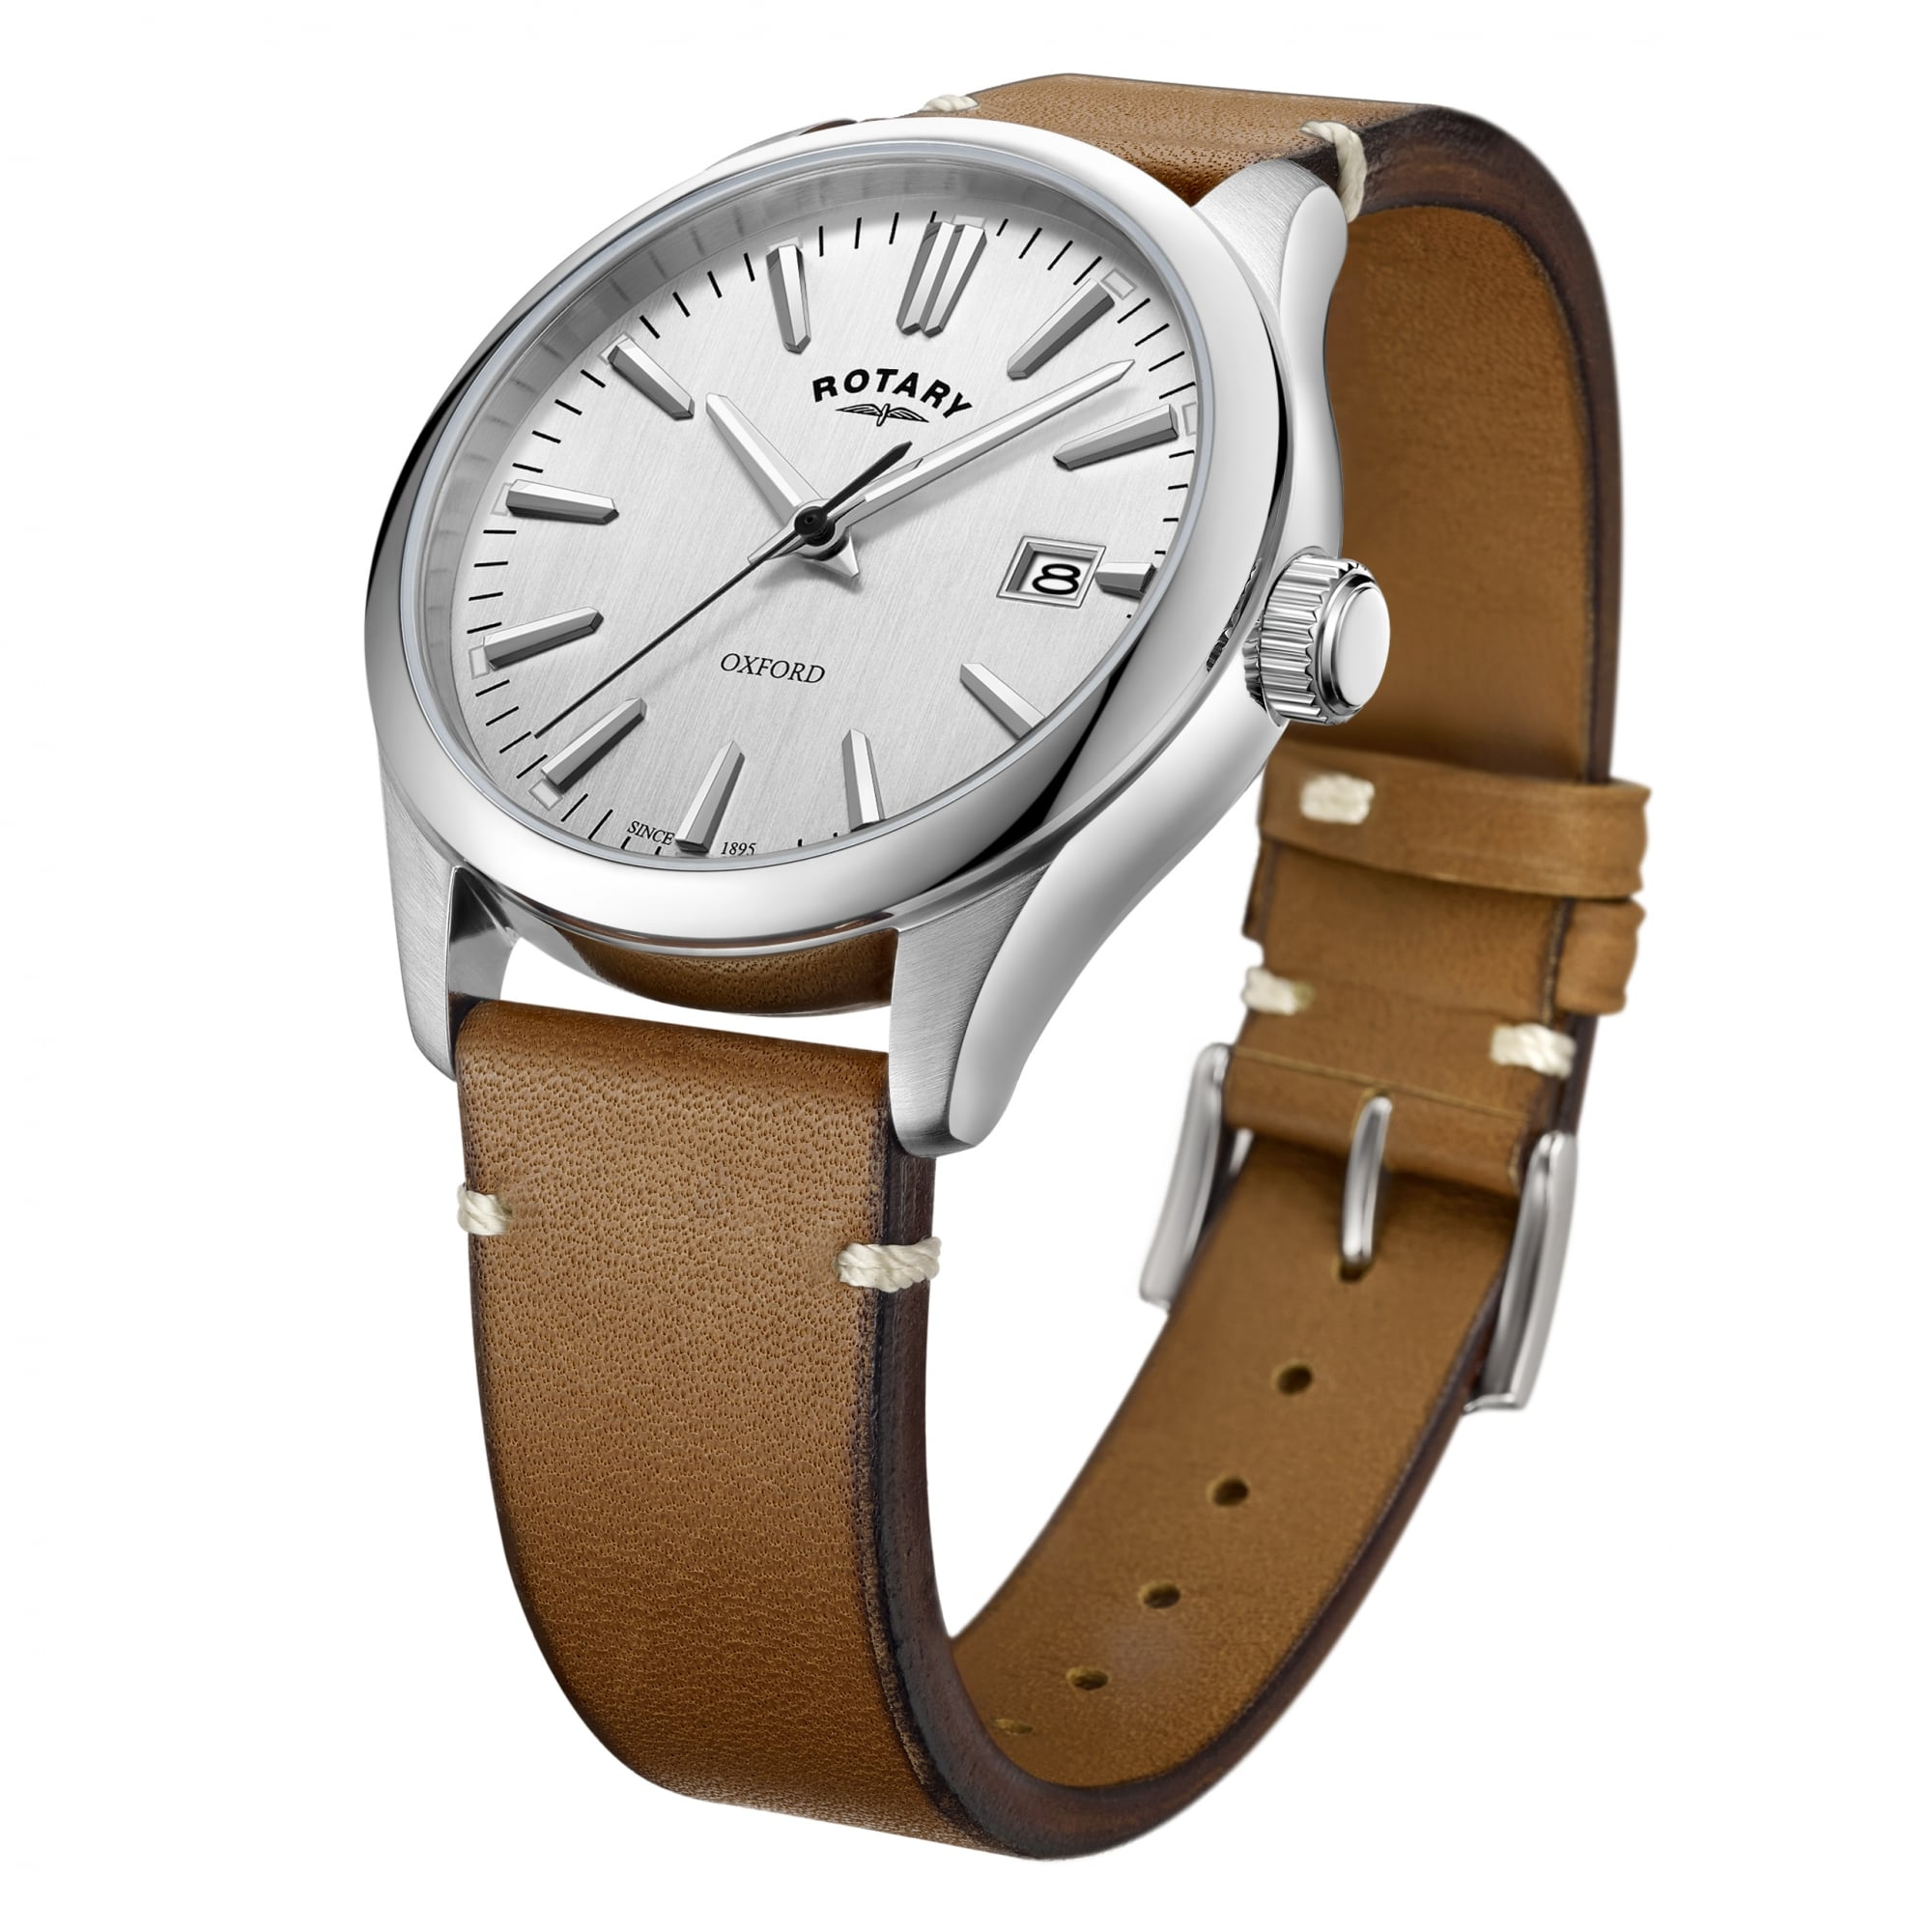 44b540f65 Rotary Watches Mens Steel Rotary Watch on a Tan Leather Strap - Mens ...